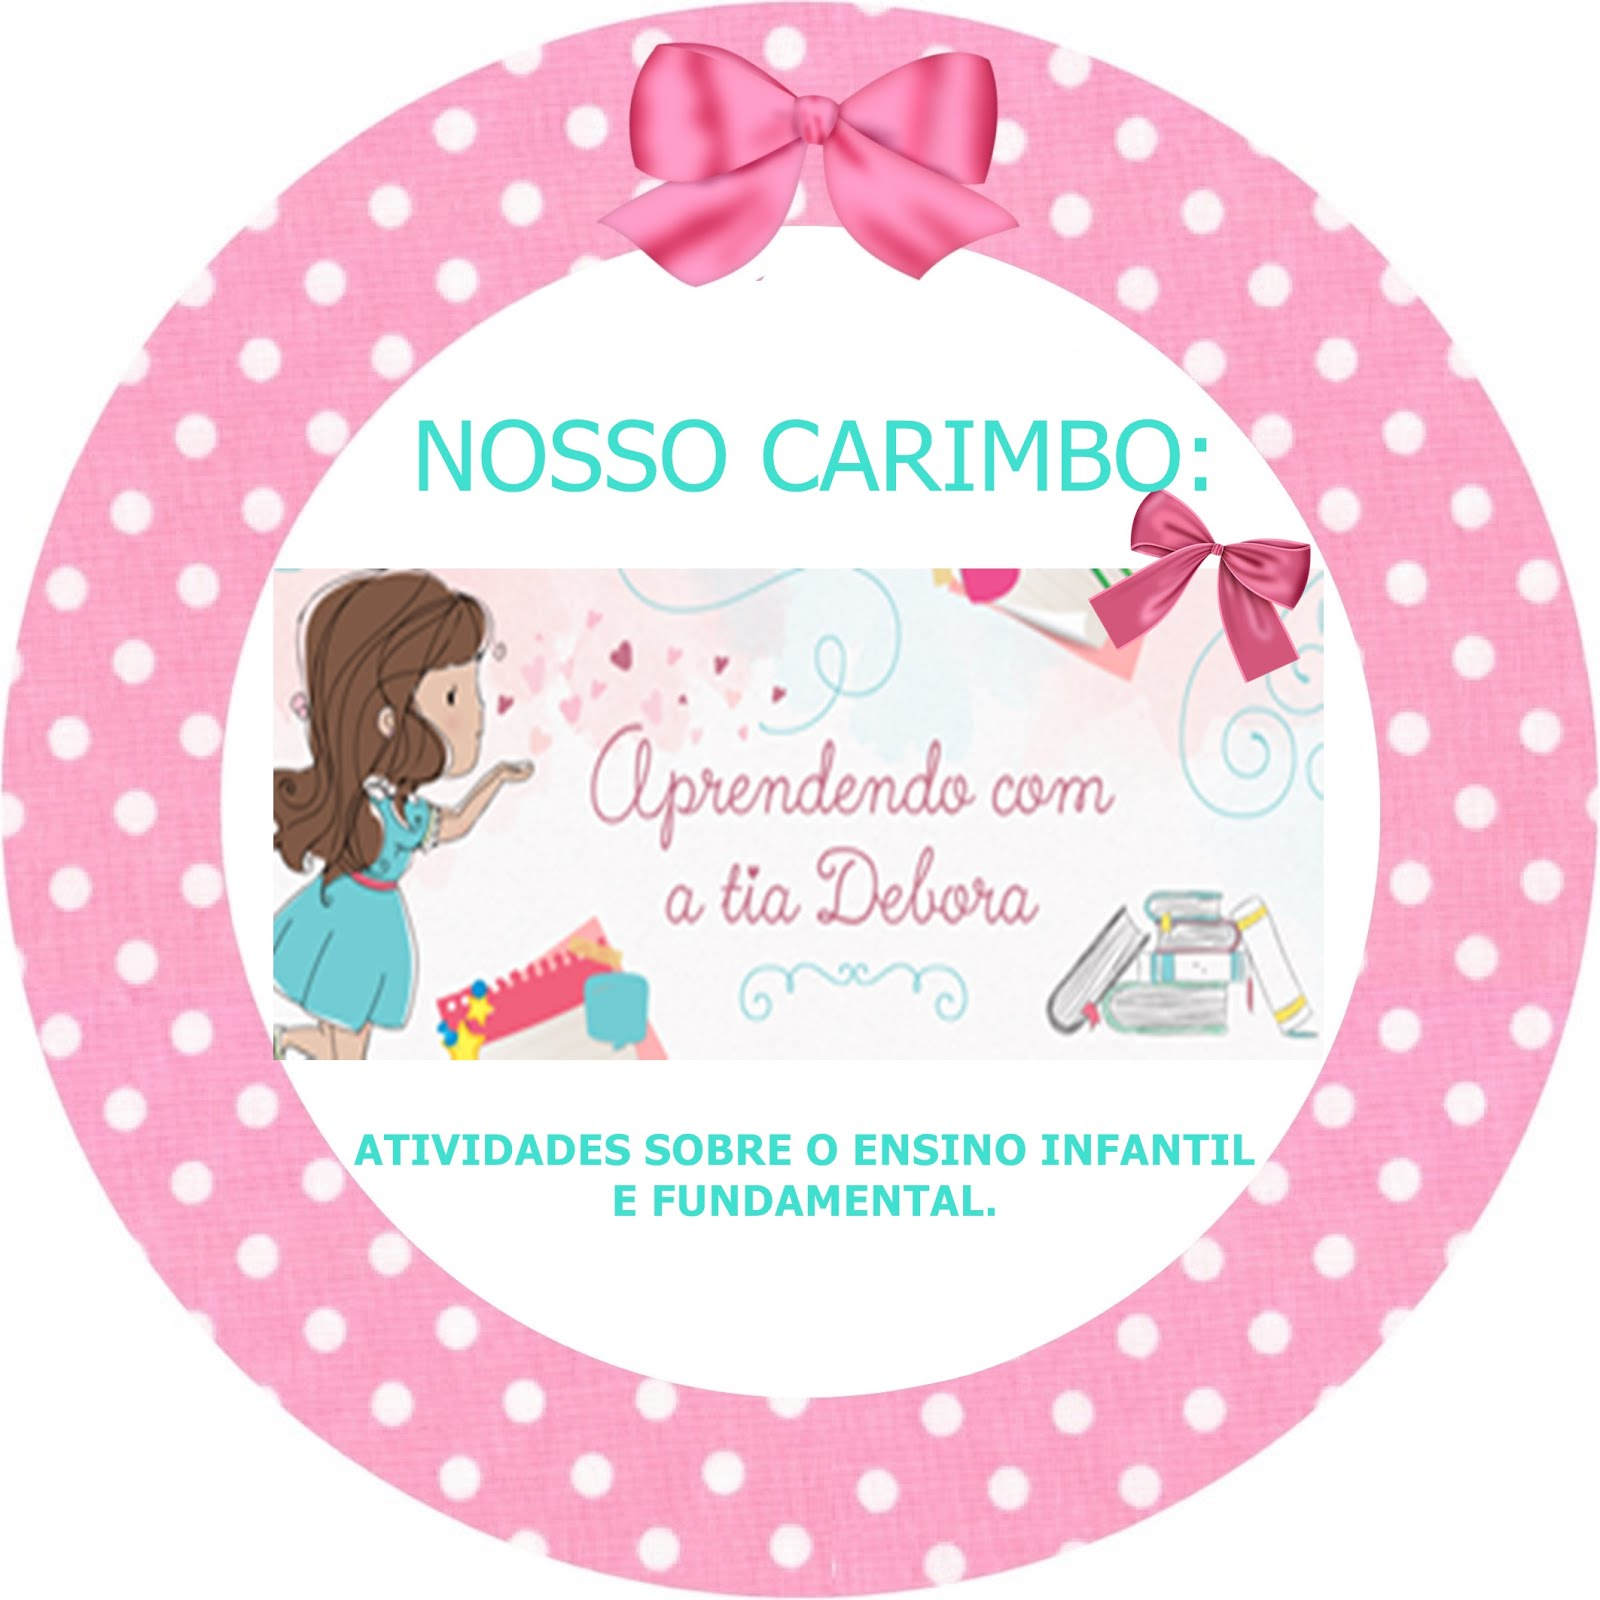 CARIMBO DO BLOG